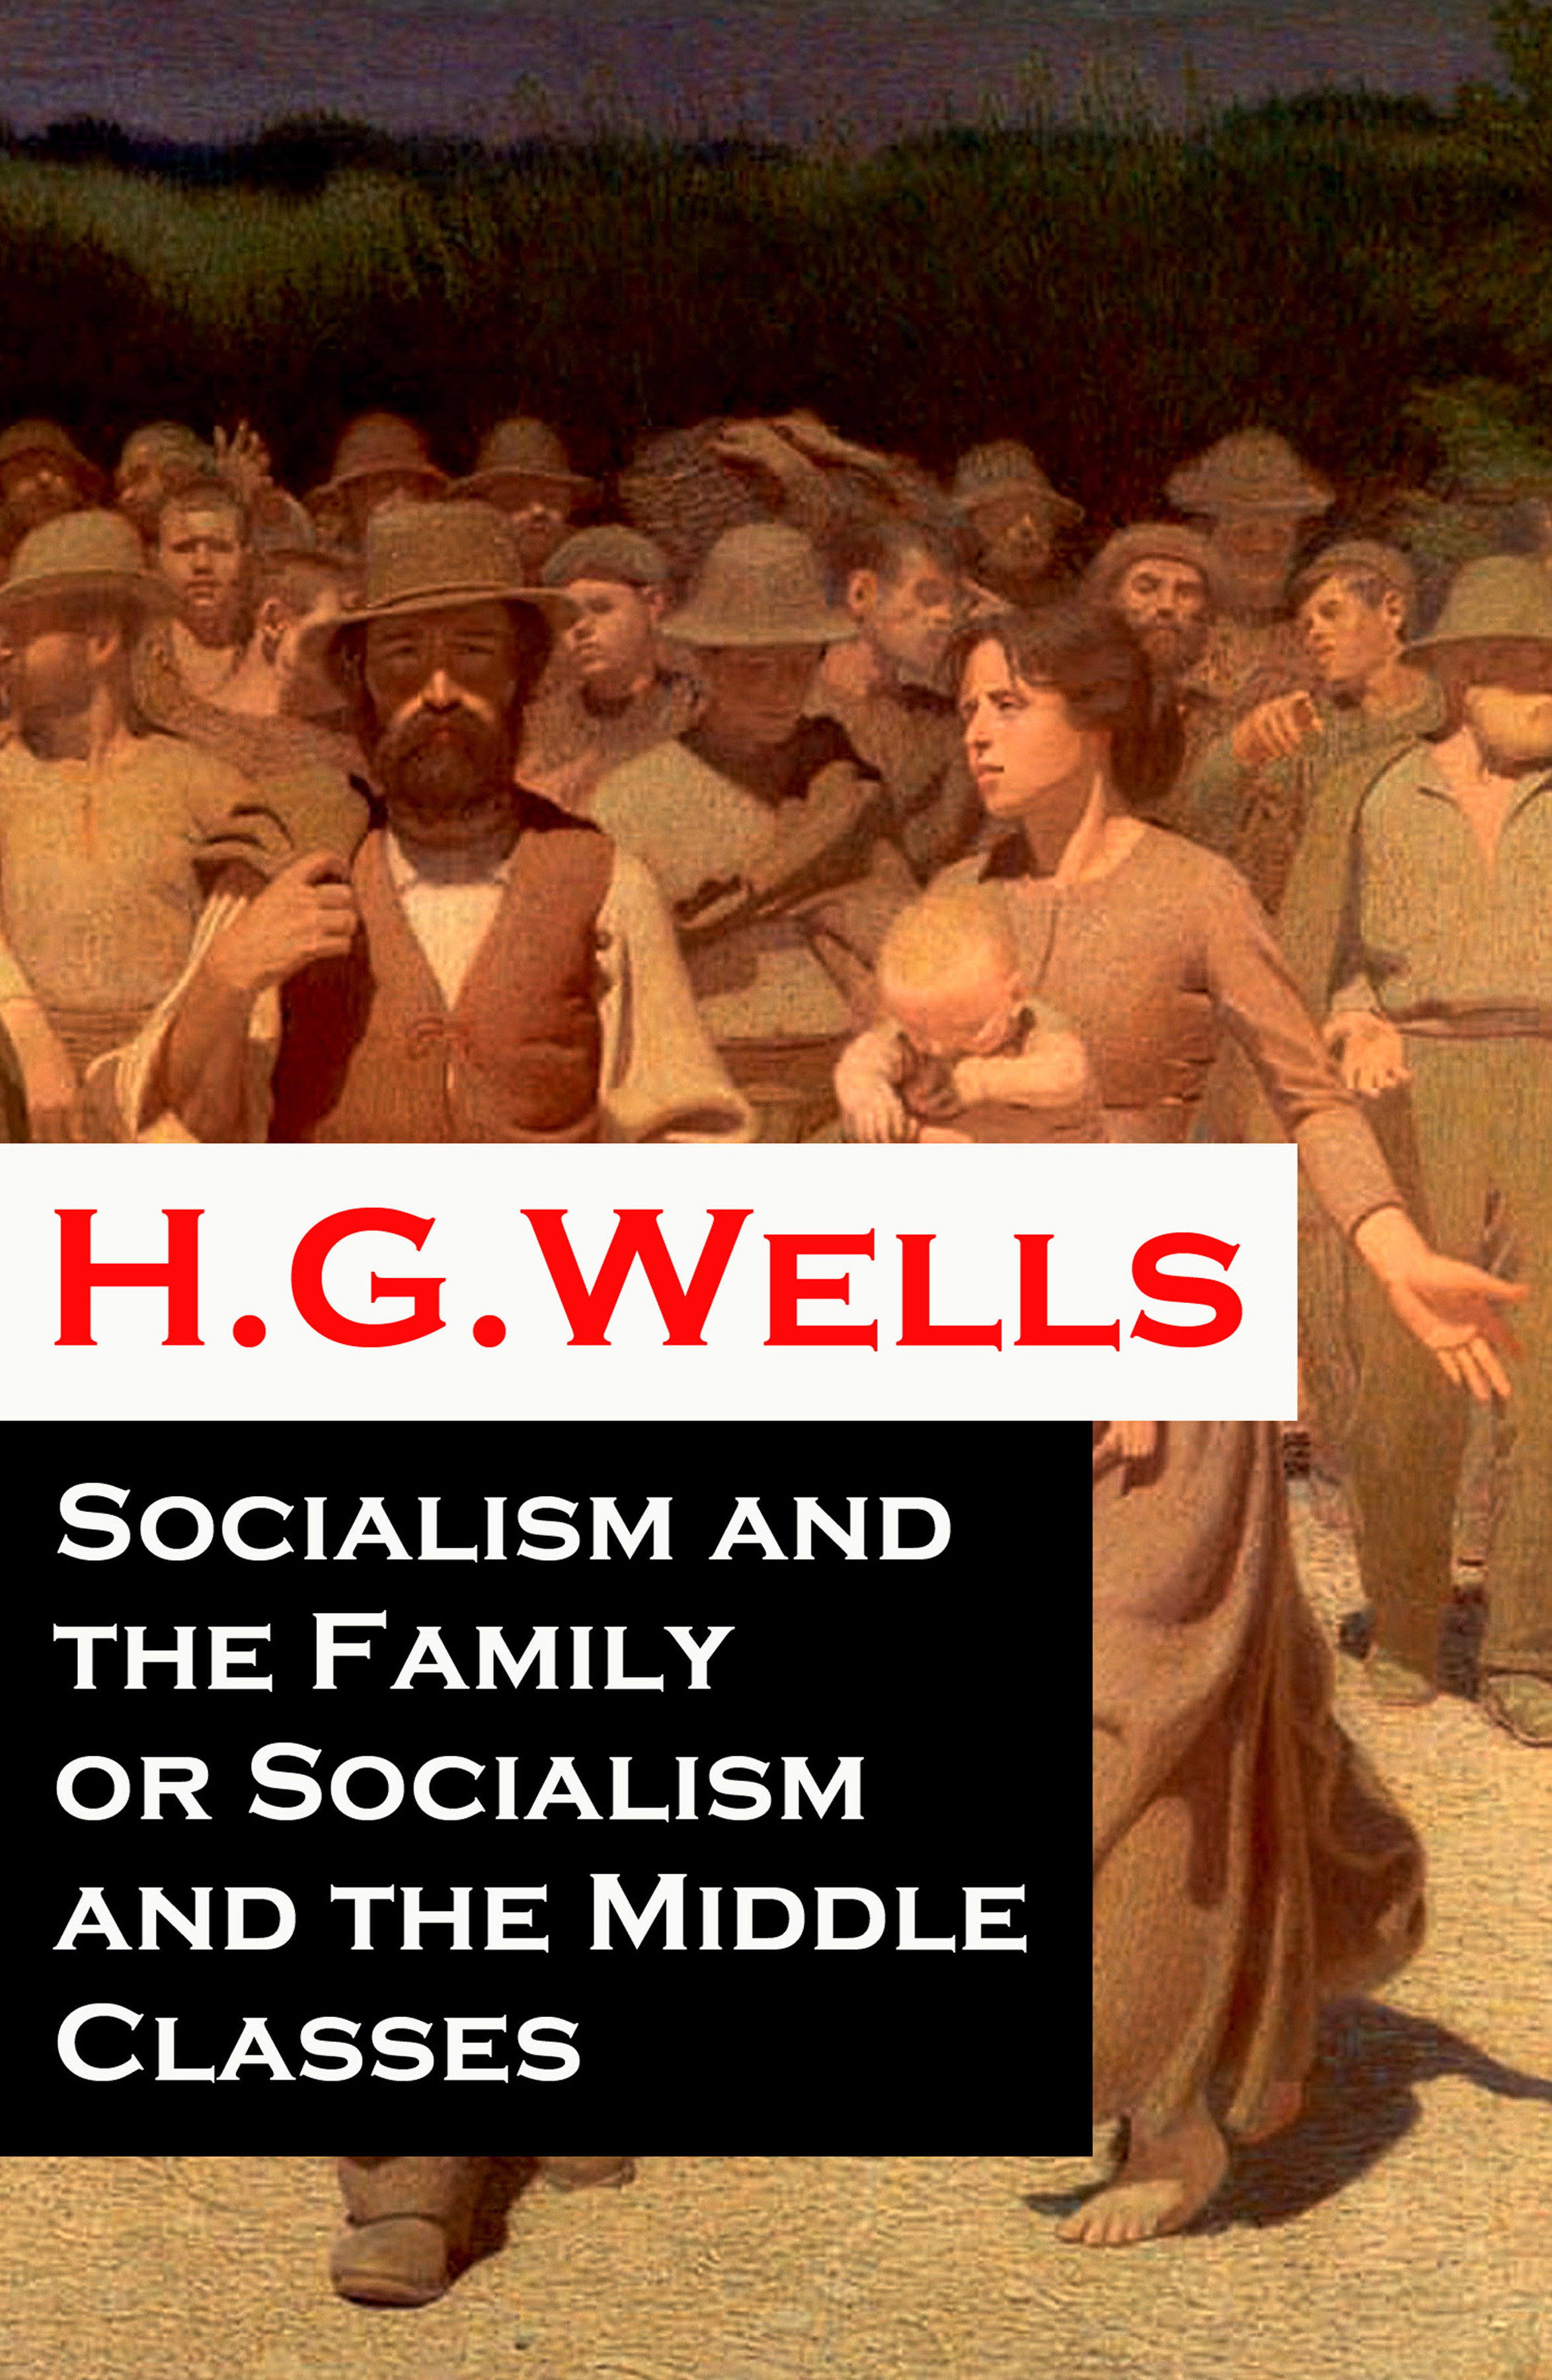 H. G. Wells Socialism and the Family or Socialism and the Middle Classes (A rare essay) g h federlein sunset and evening bells